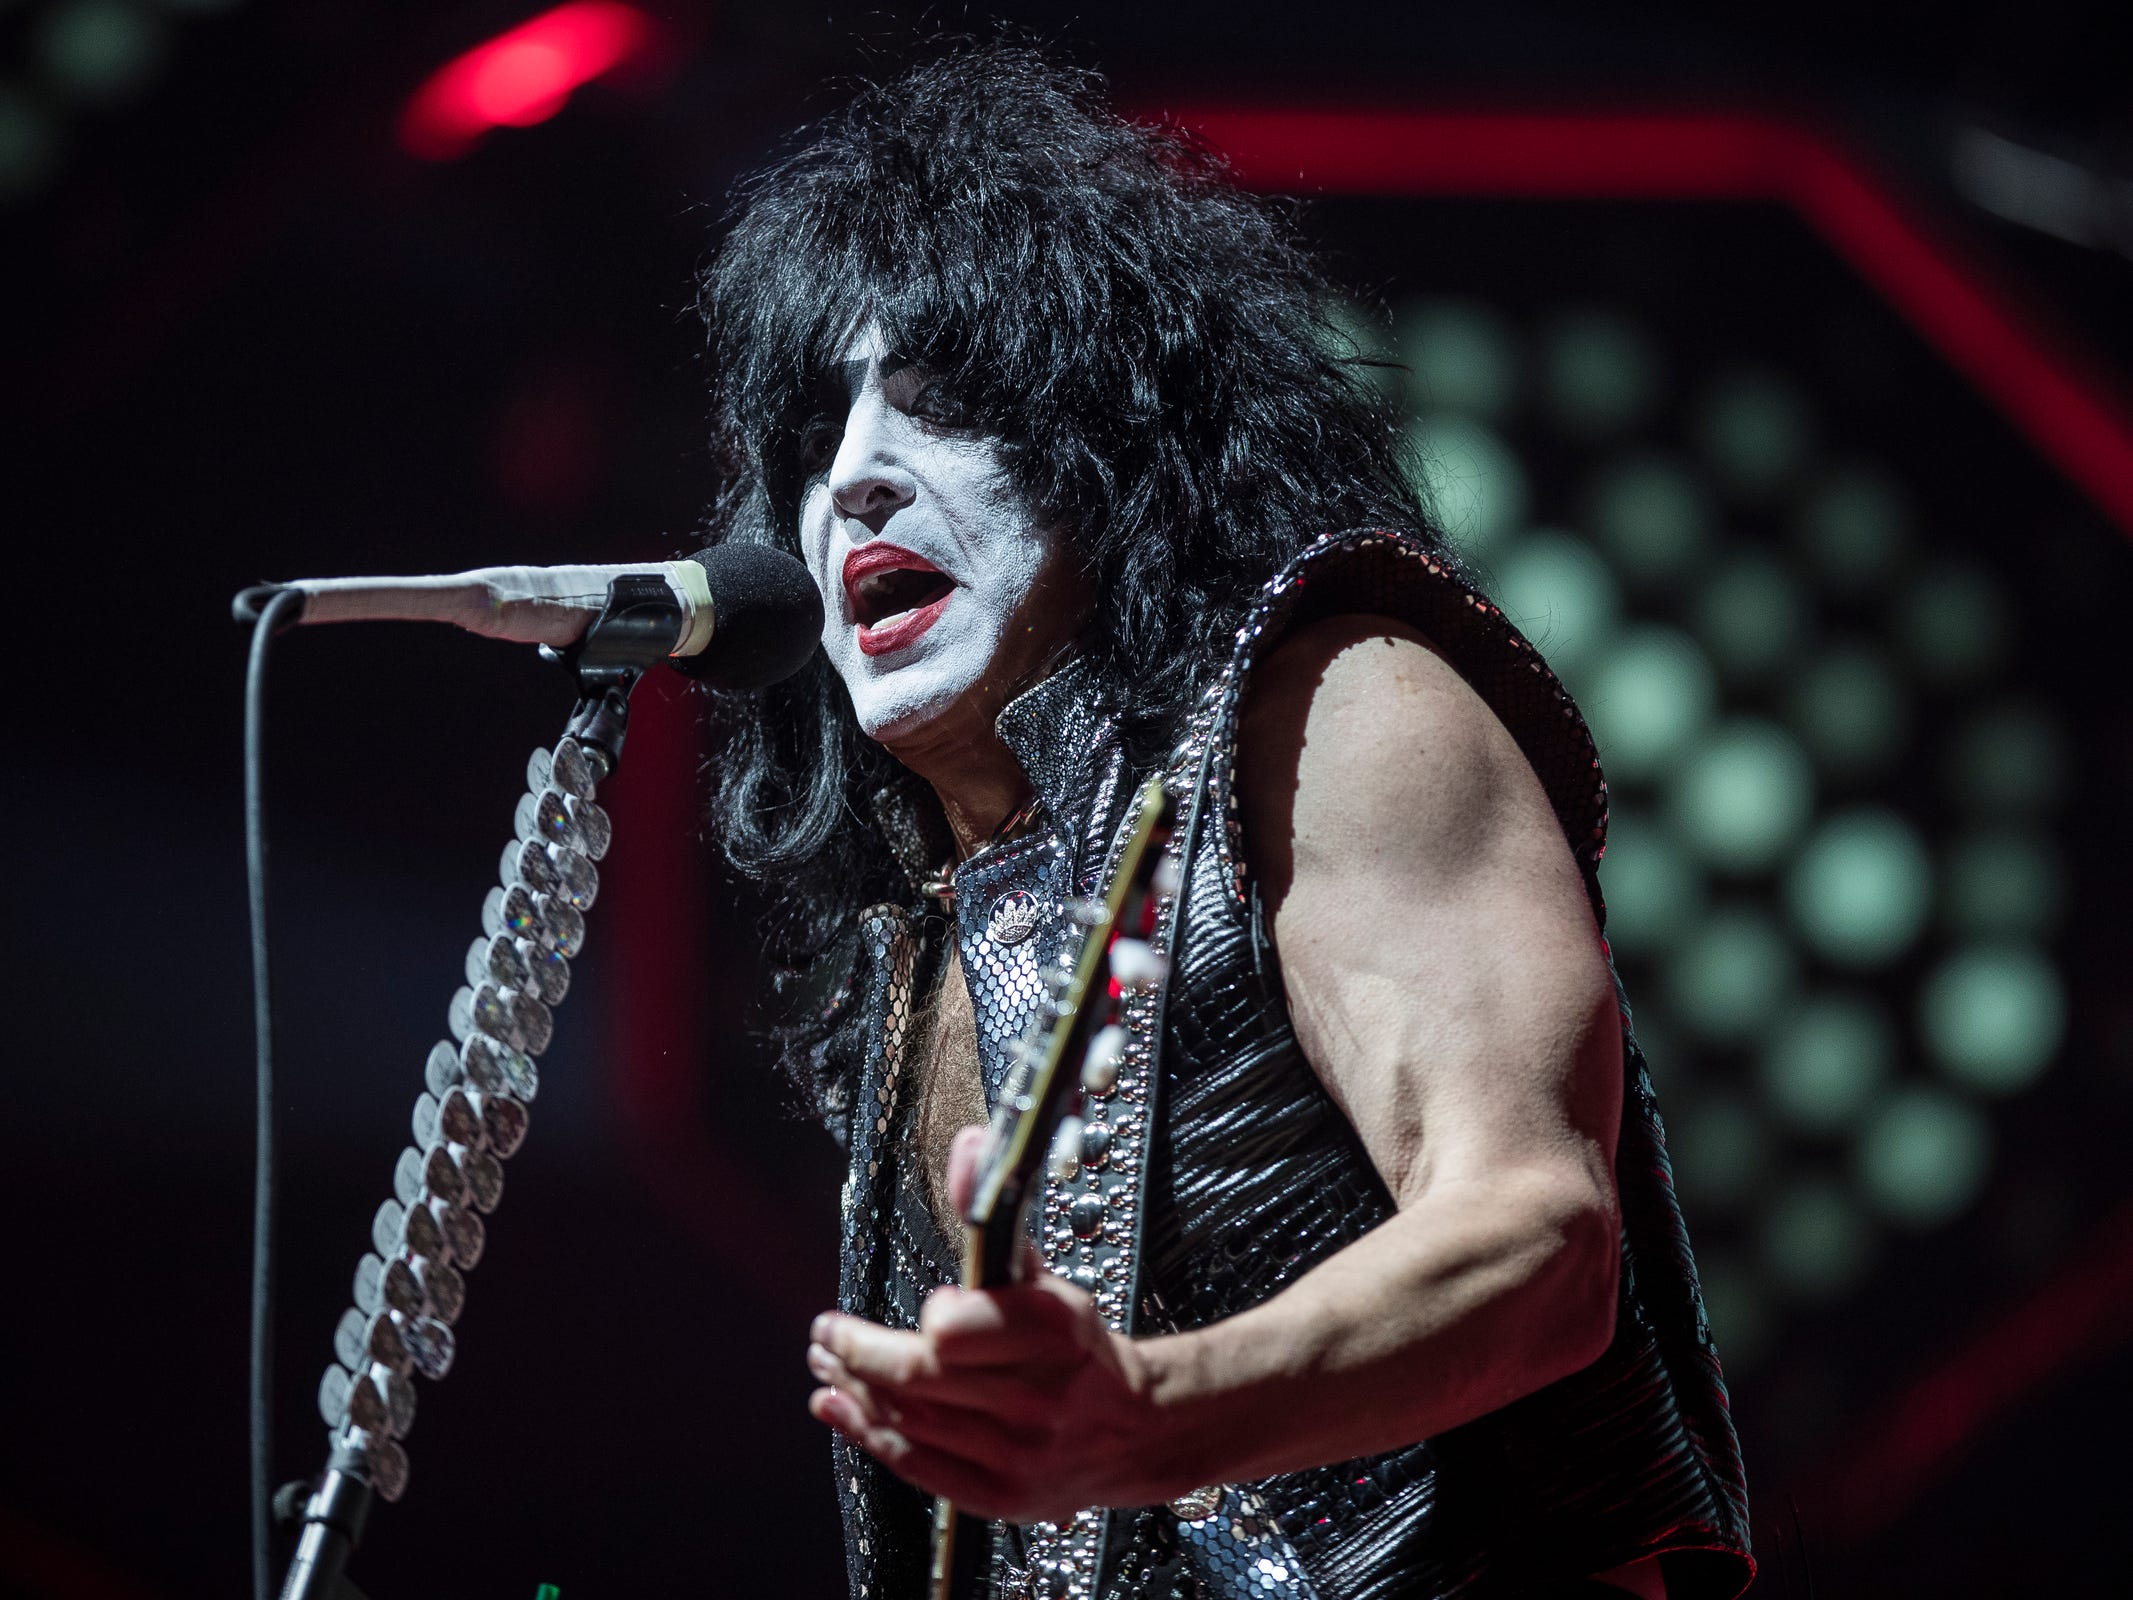 KISS' Paul Stanley performs their End of The Road world tour at the Little Caesars Arena in Detroit, Wednesday, March 13, 2019.